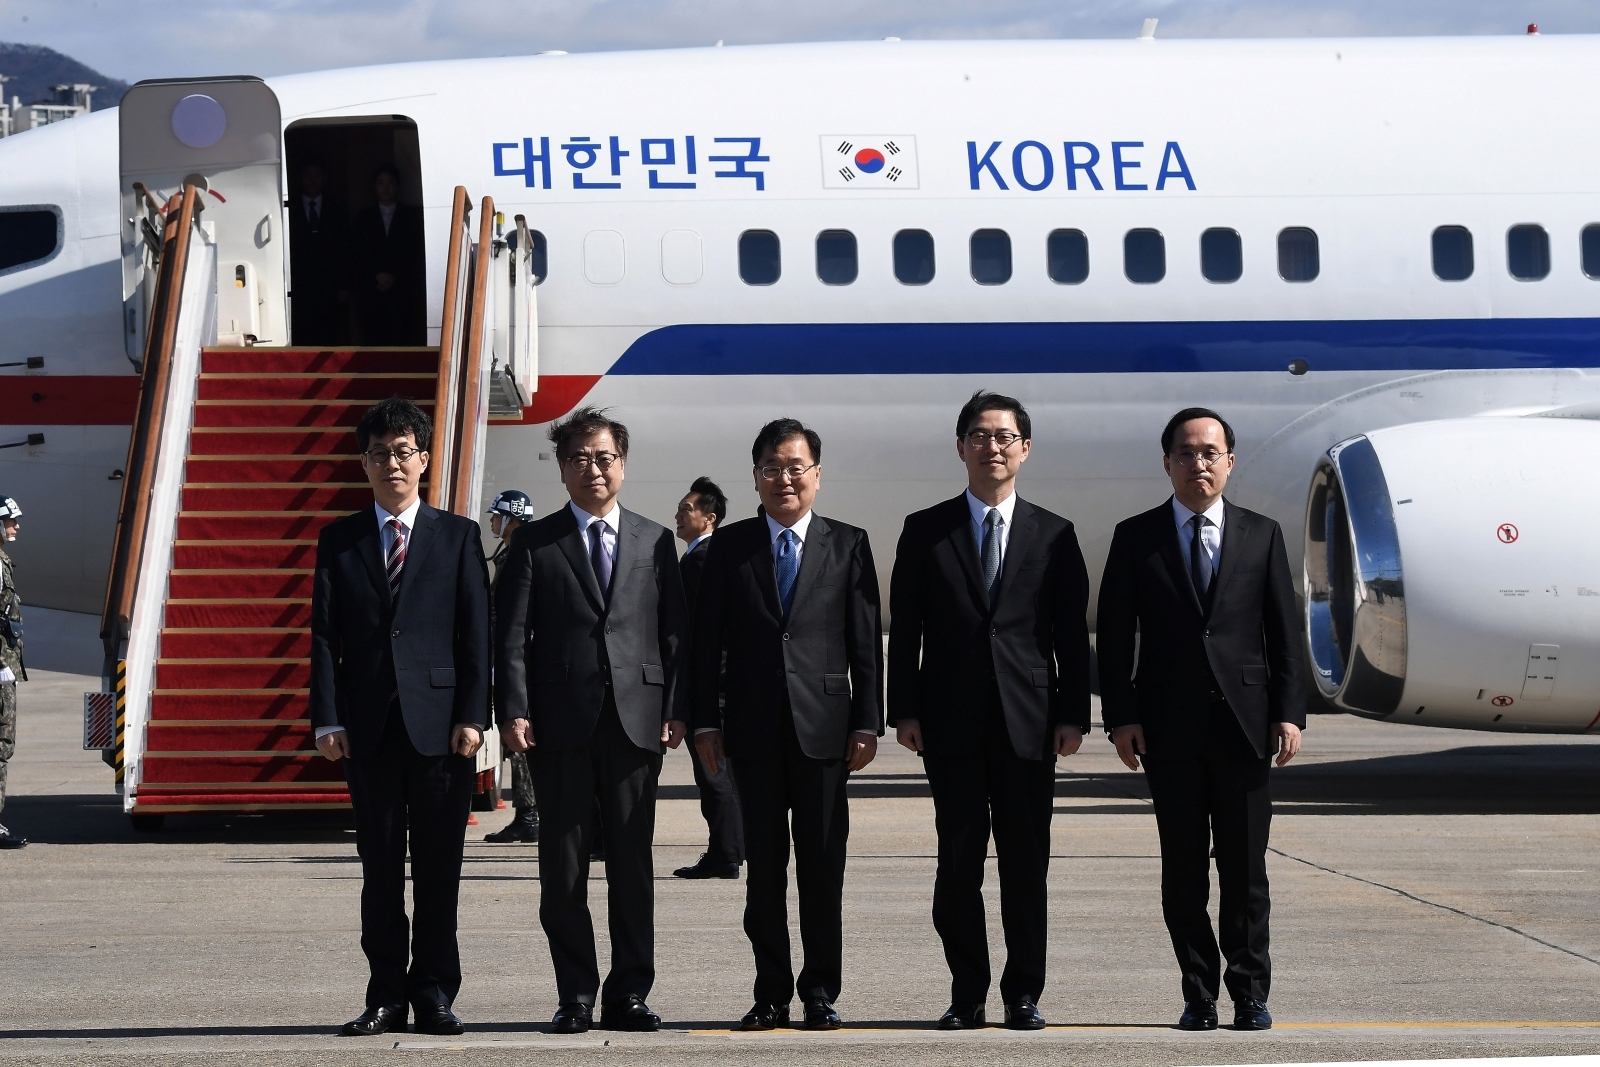 S.Korea to announce name of special envoy to North